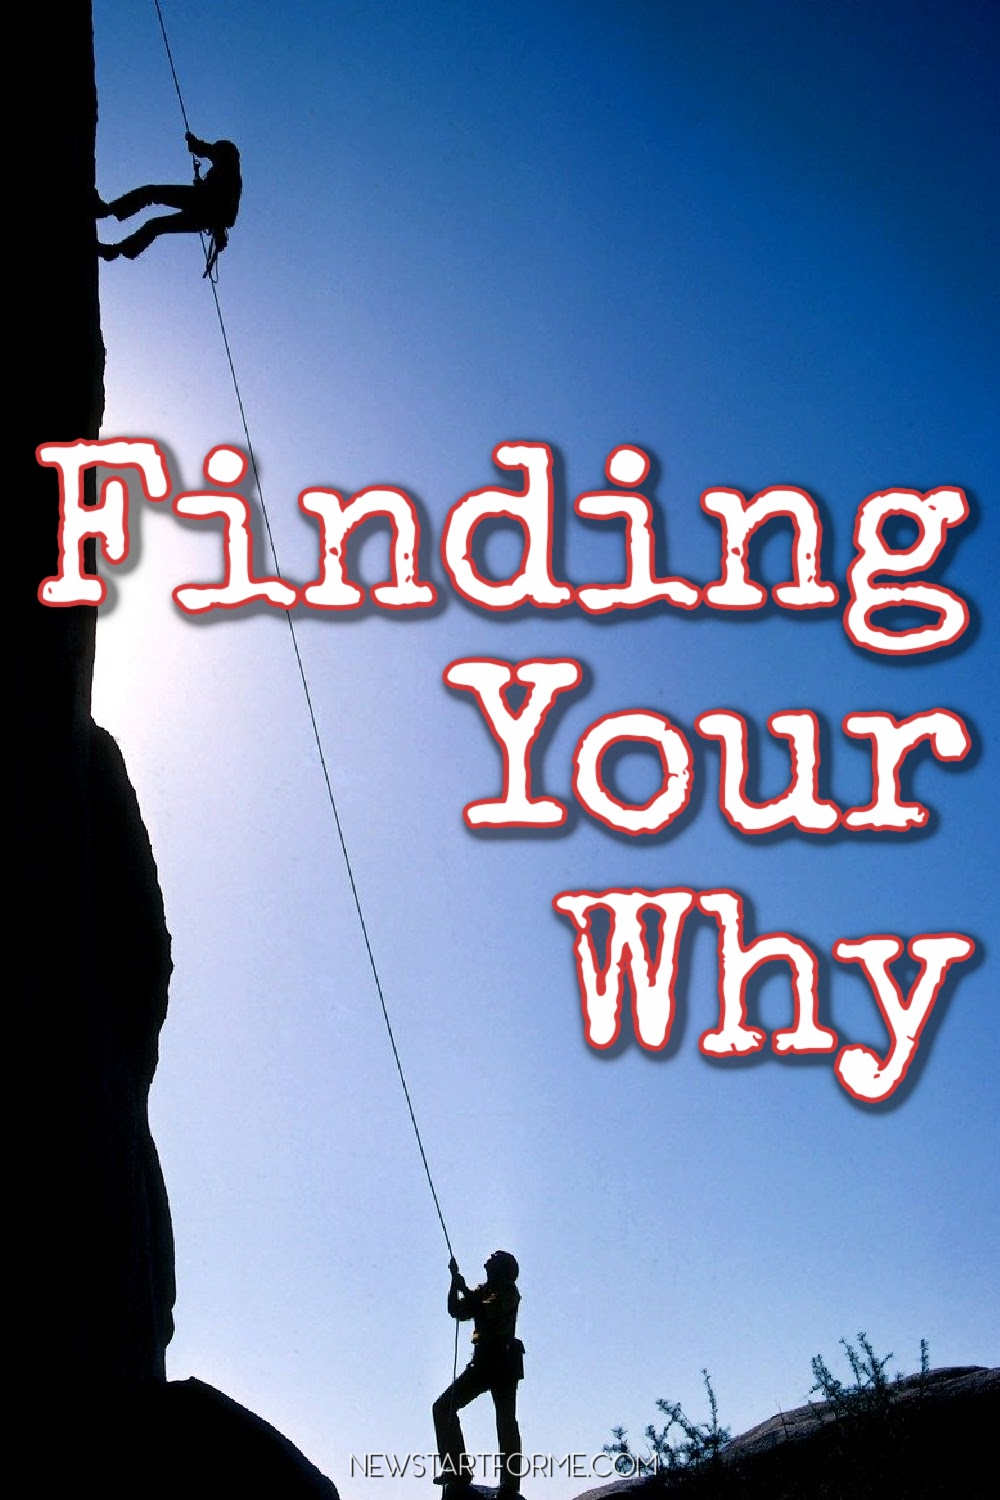 The WHY behind the decision to go for a healthier more active lifestyle is the driver and the motivator for your journey! Your WHY should make your cry!